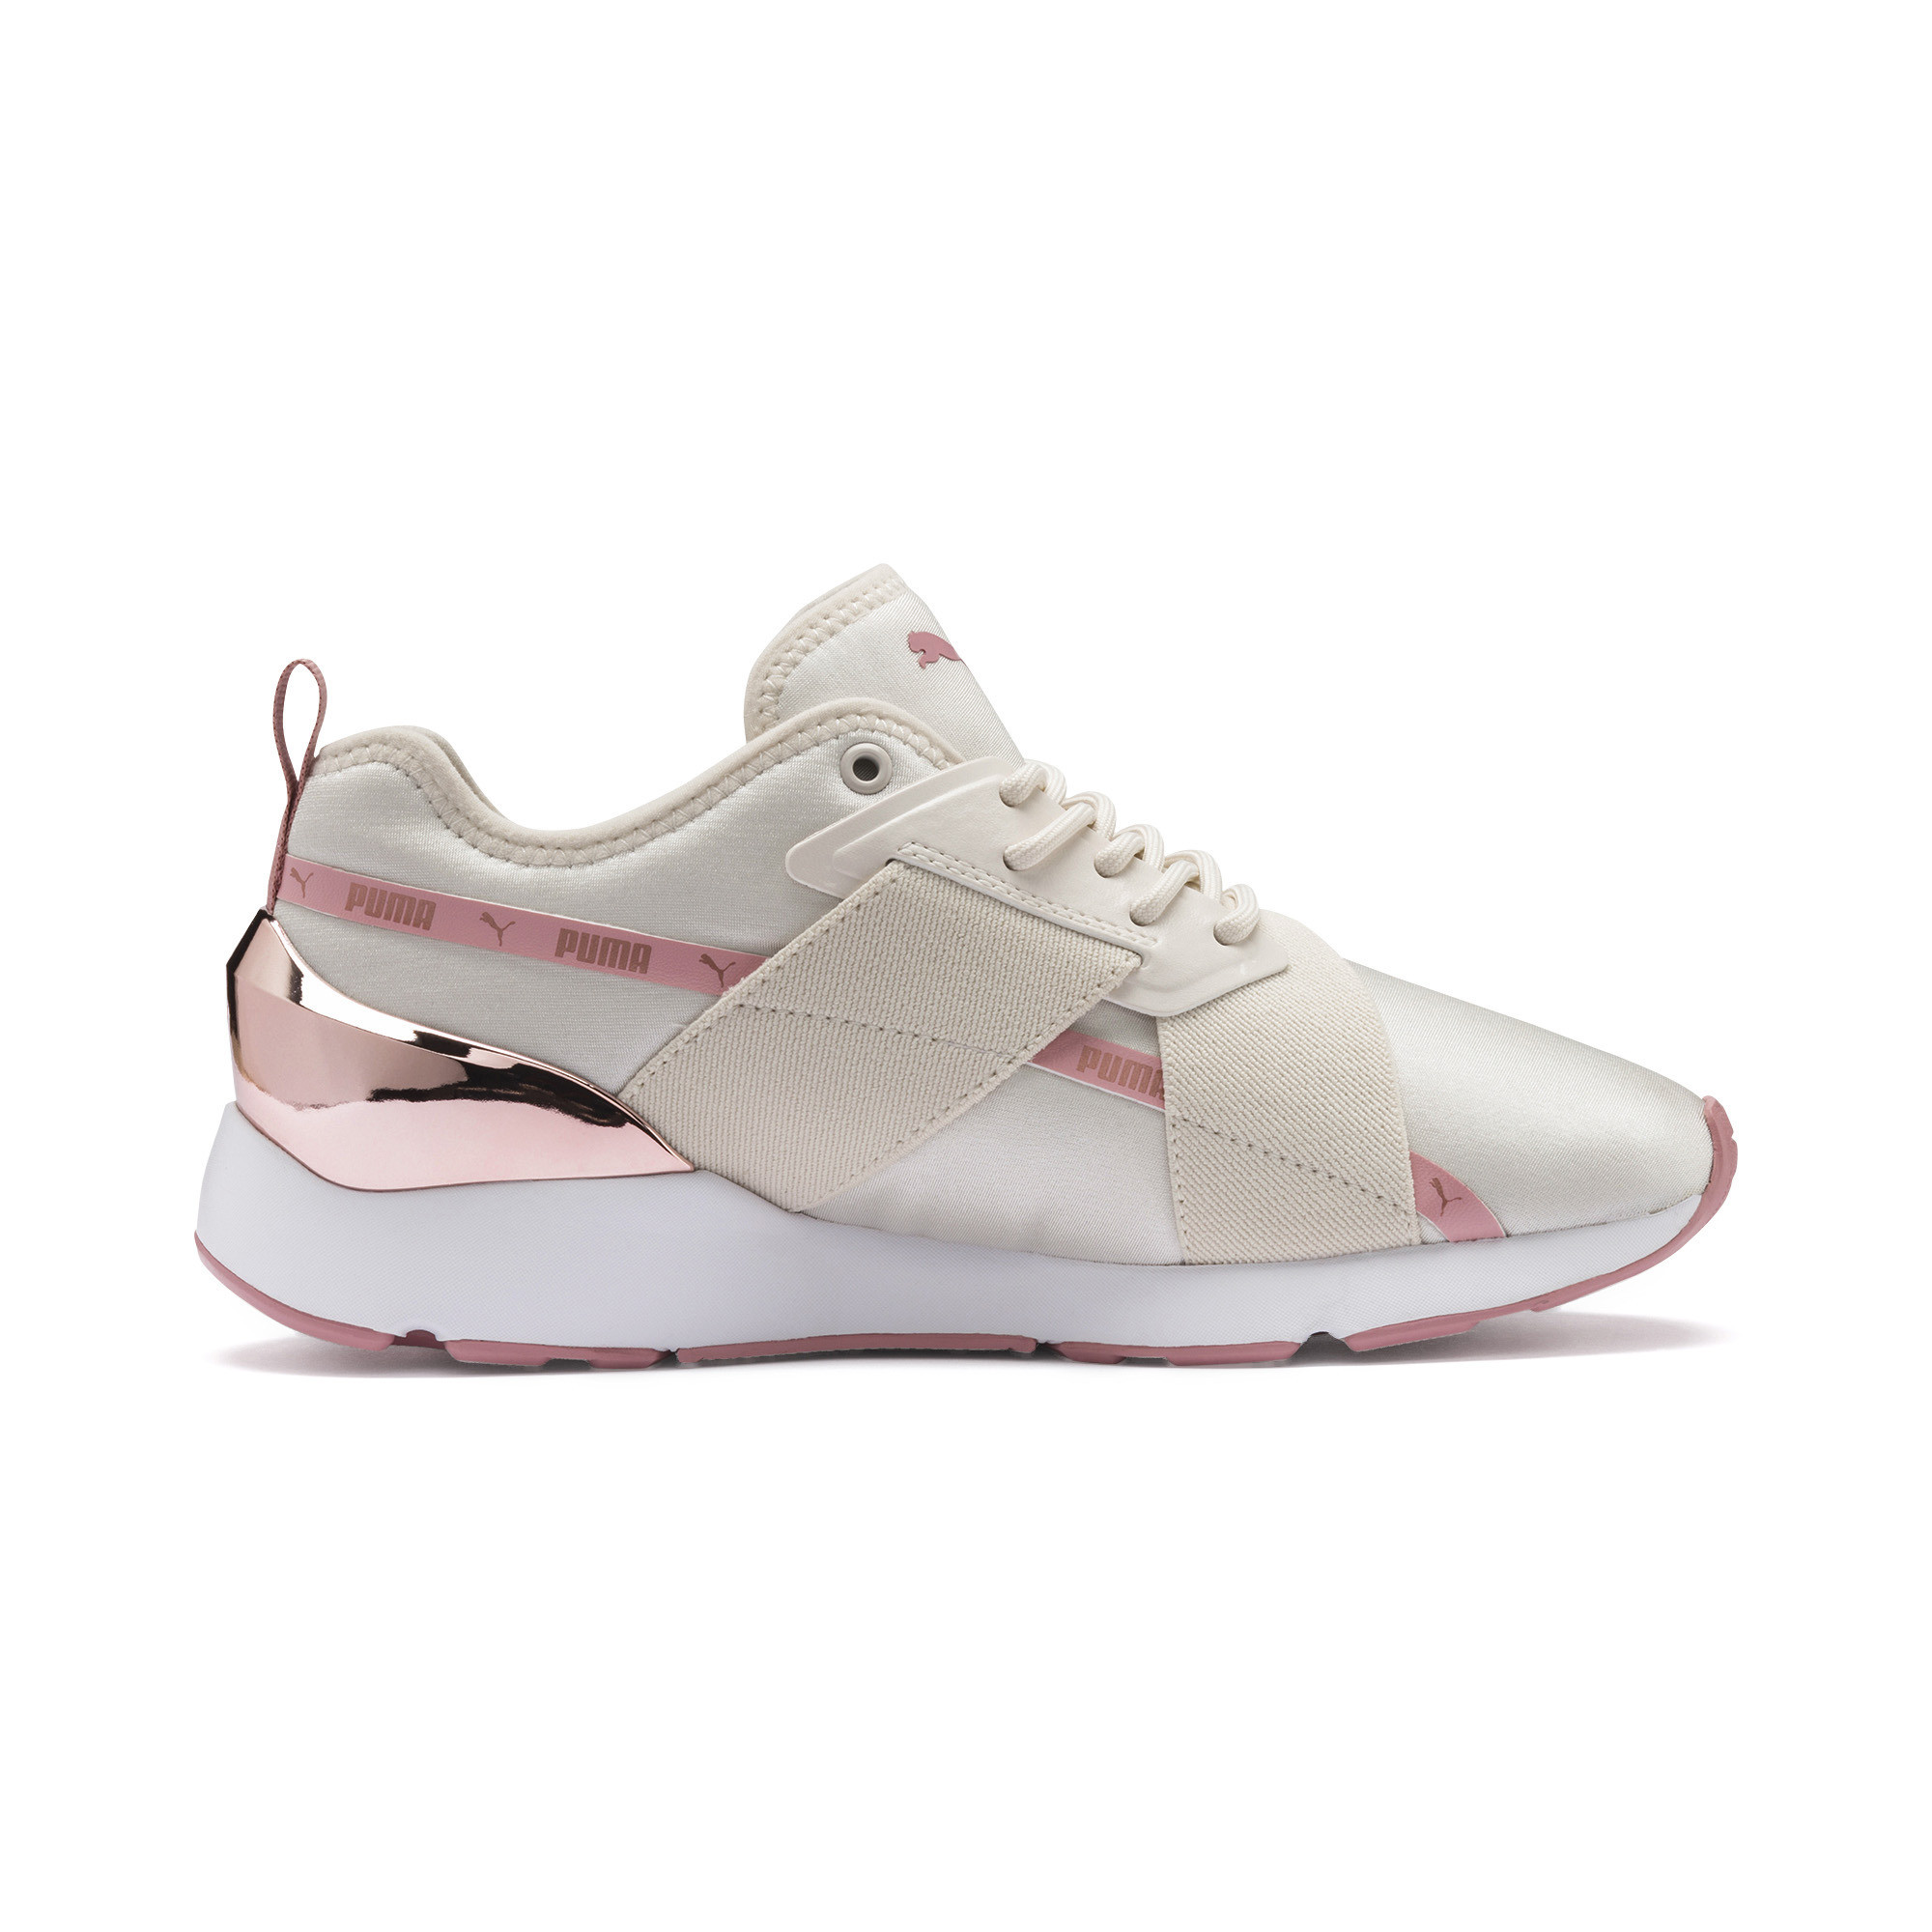 PUMA-Muse-X-2-Metallic-Women-039-s-Sneakers-Women-Shoe-Evolution thumbnail 14